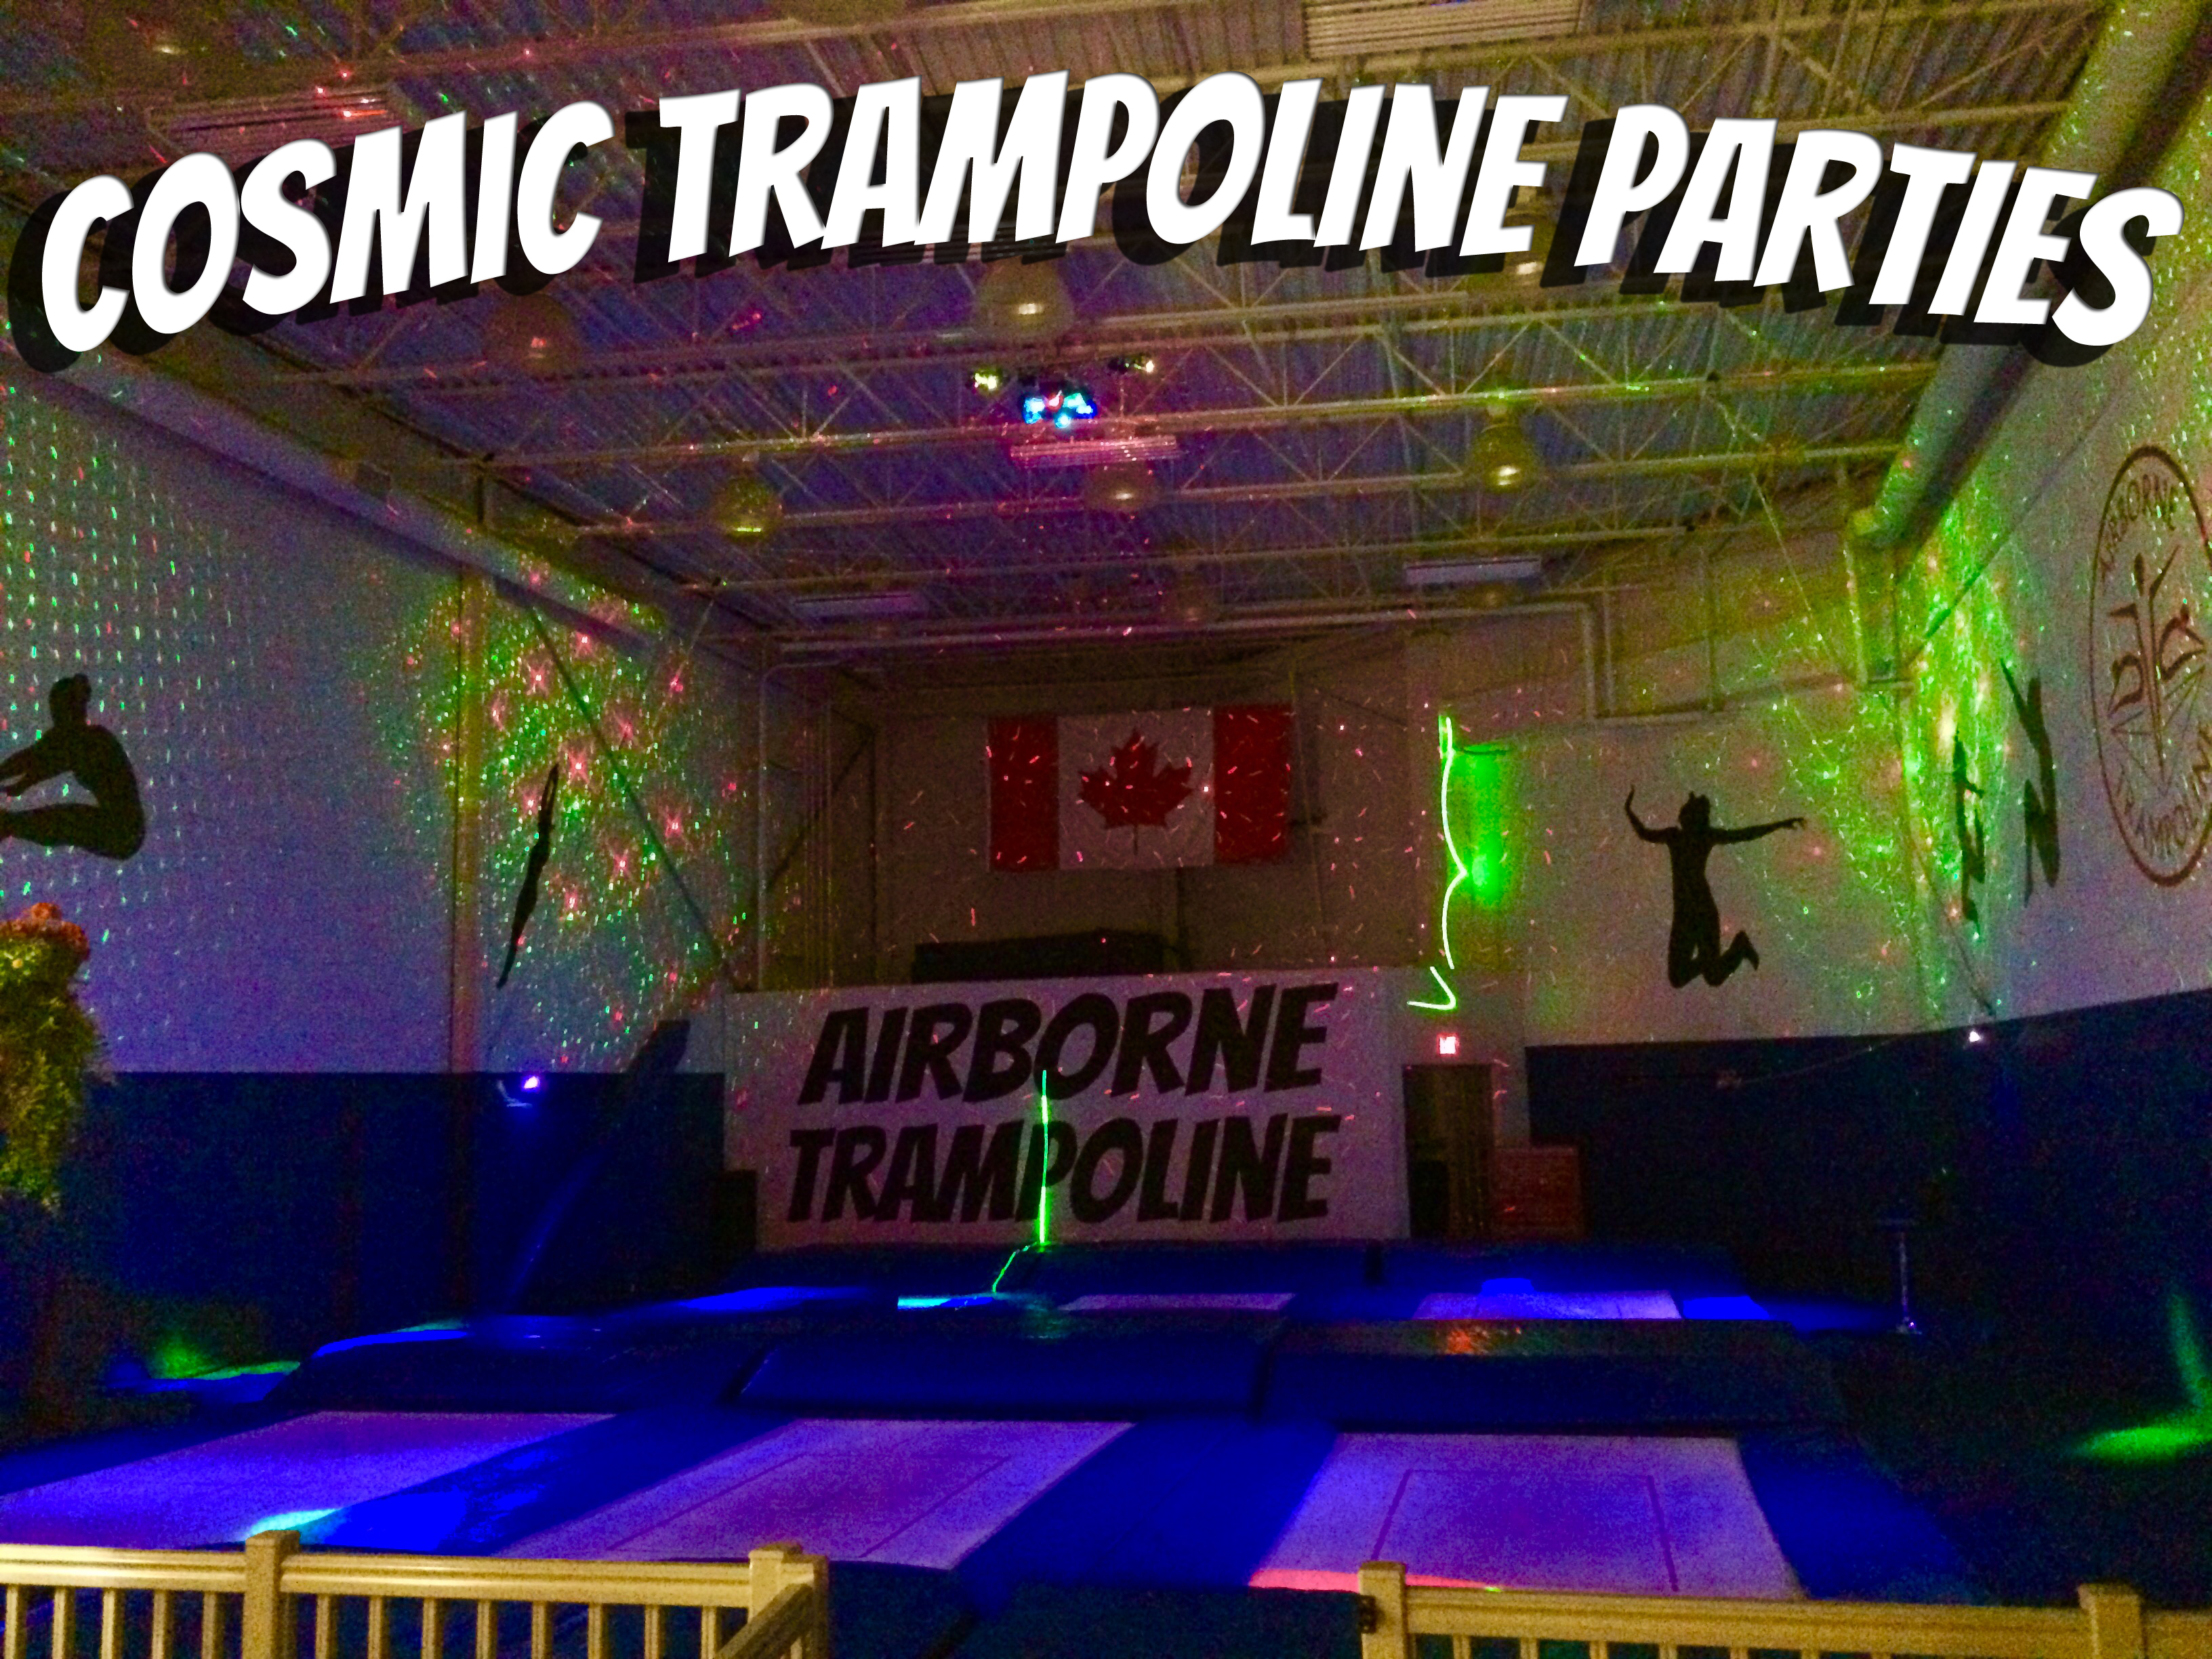 Cosmic Trampoline Party